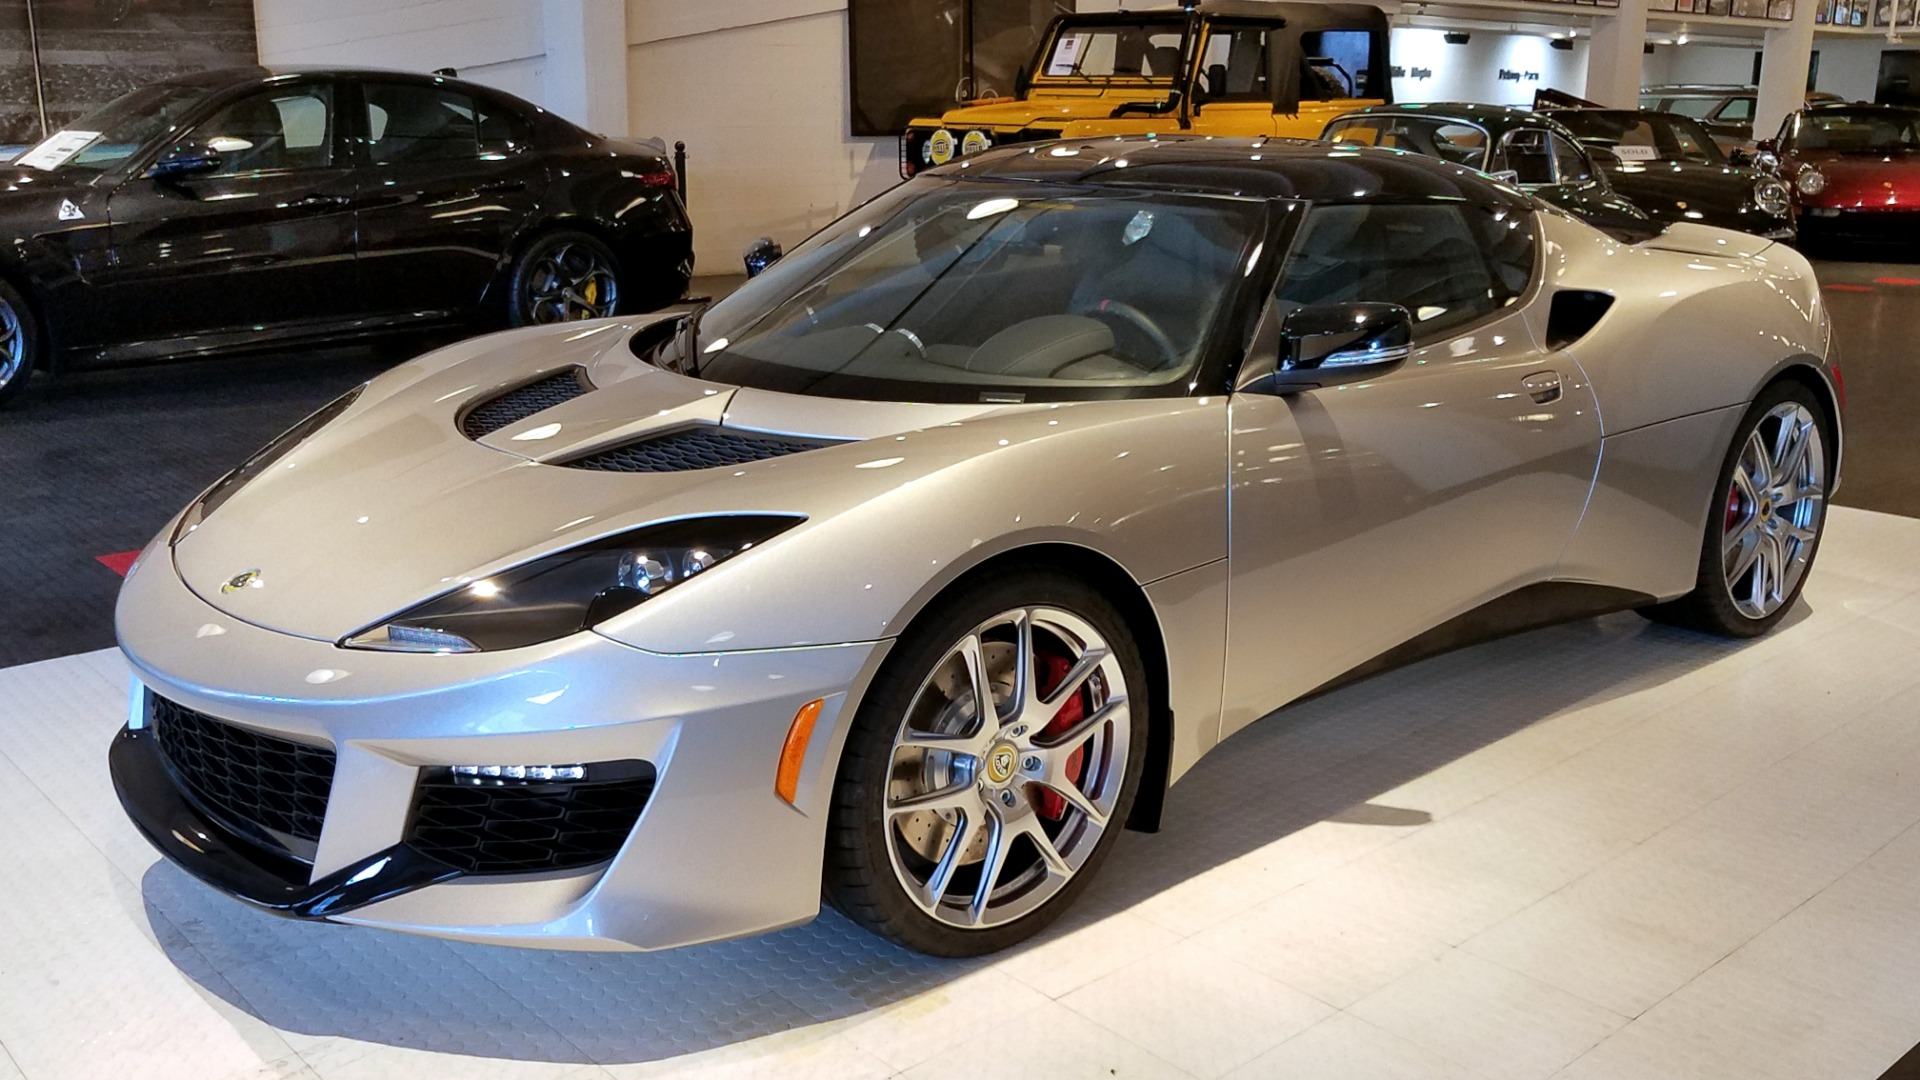 2017 lotus evora 400 stock l171005 for sale near san francisco ca ca lotus dealer. Black Bedroom Furniture Sets. Home Design Ideas